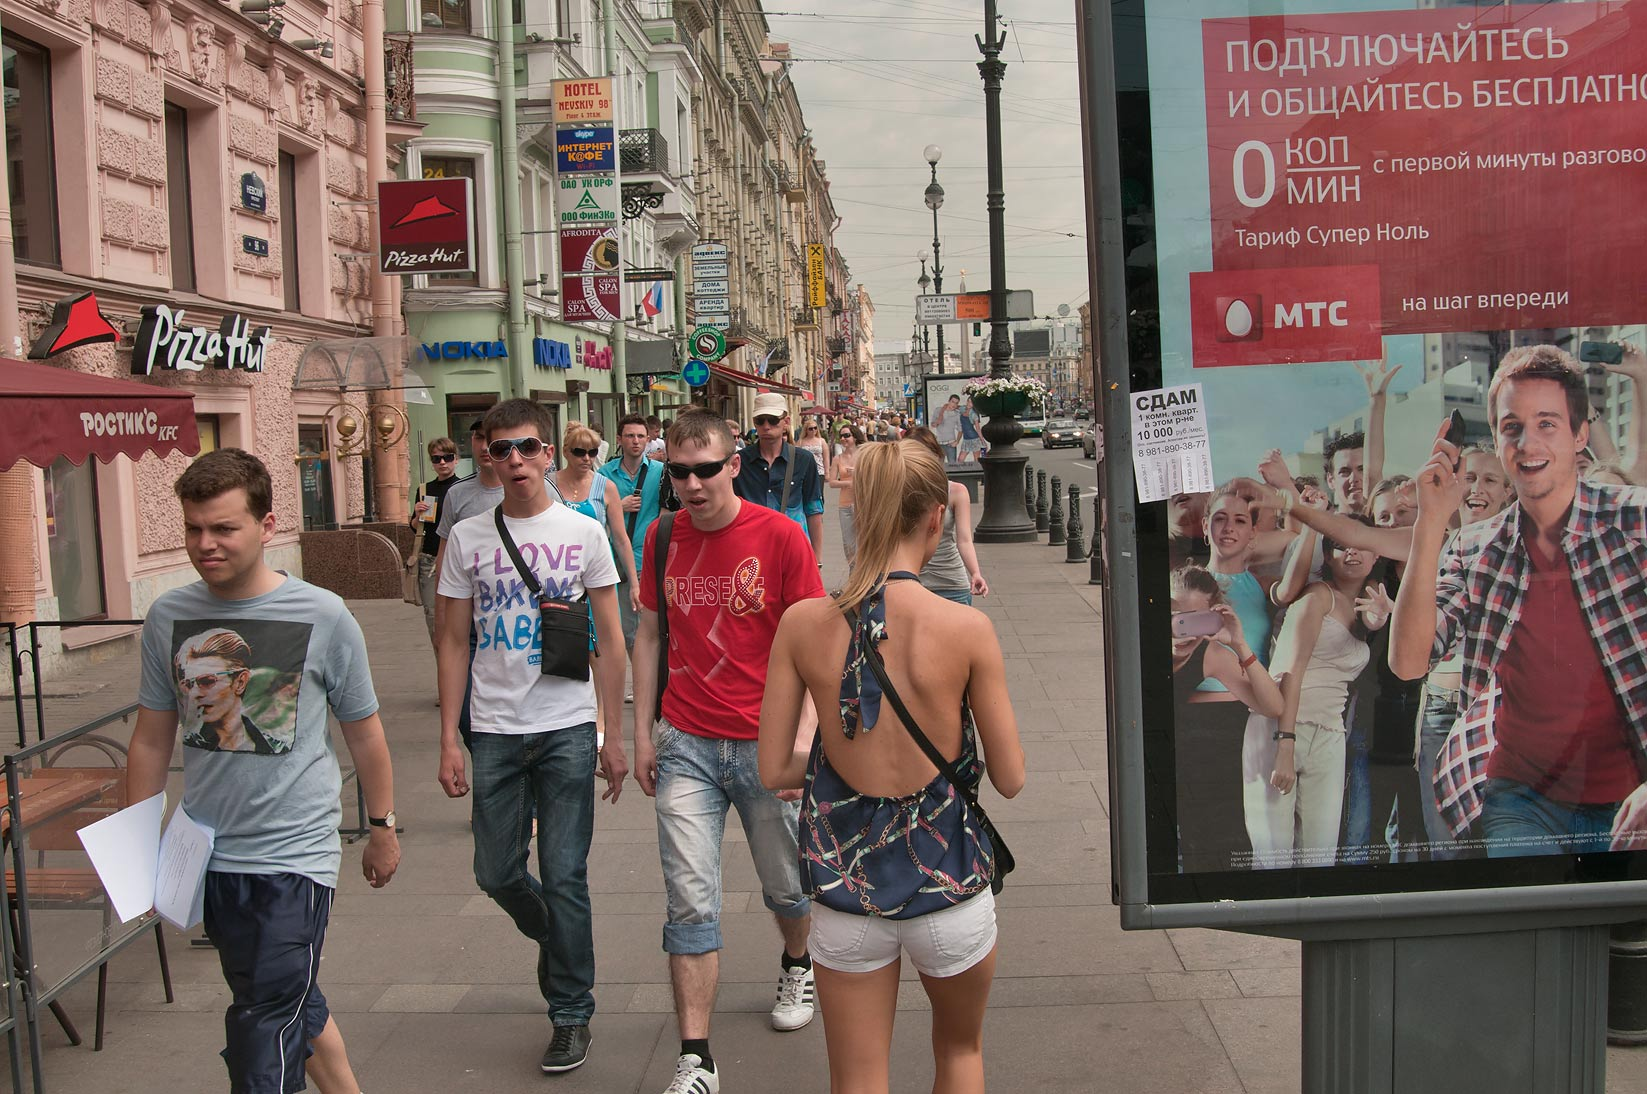 Pedestrians walking on Nevsky Prospect. St.Petersburg, Russia